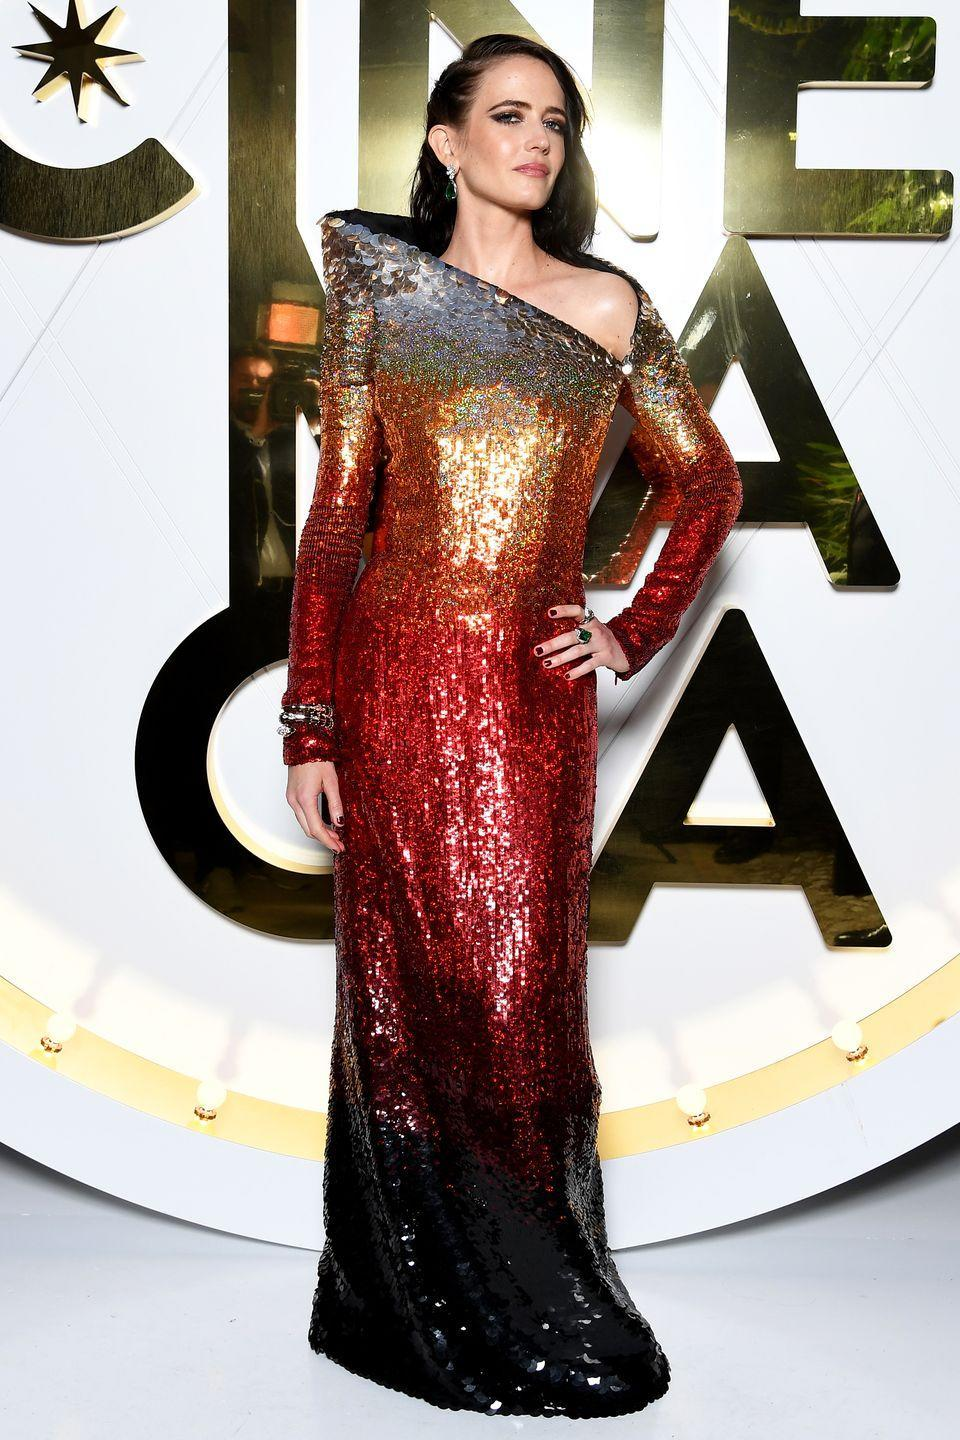 <p>Who: Eva Green </p><p>When: June 13, 2019</p><p>Wearing: Jean Paul Gaultier</p><p>Why: It looks like Eva Green also got the futuristic memo, because her gown at the Bvlgari Hight Jewelry Exhibition on in Capri, Italy was a glam take on <em>Star Trek</em>. Beam us up with her!</p>